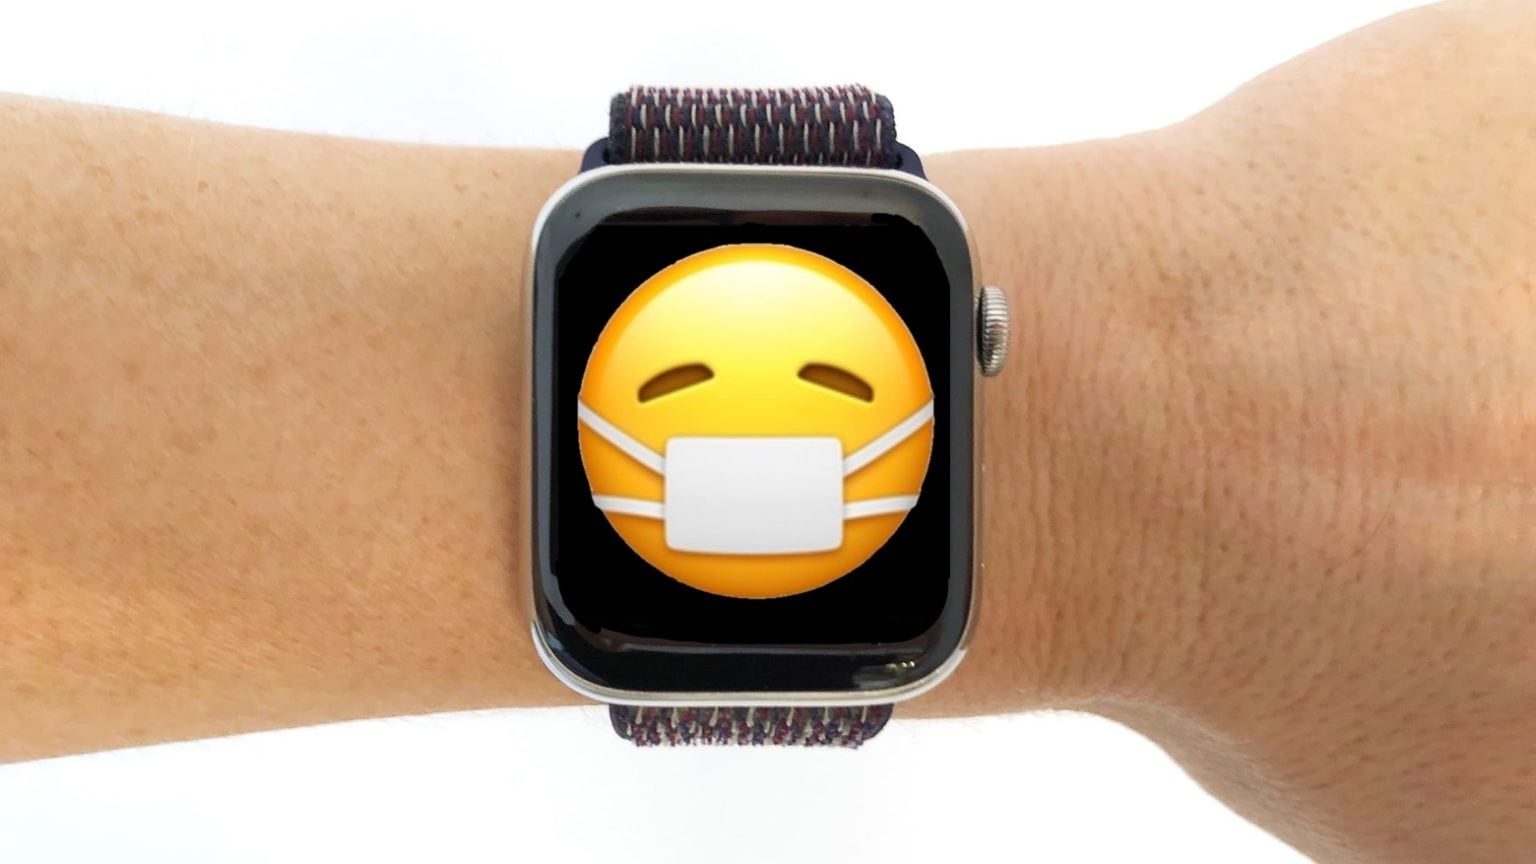 Apple Watch Sick Mode